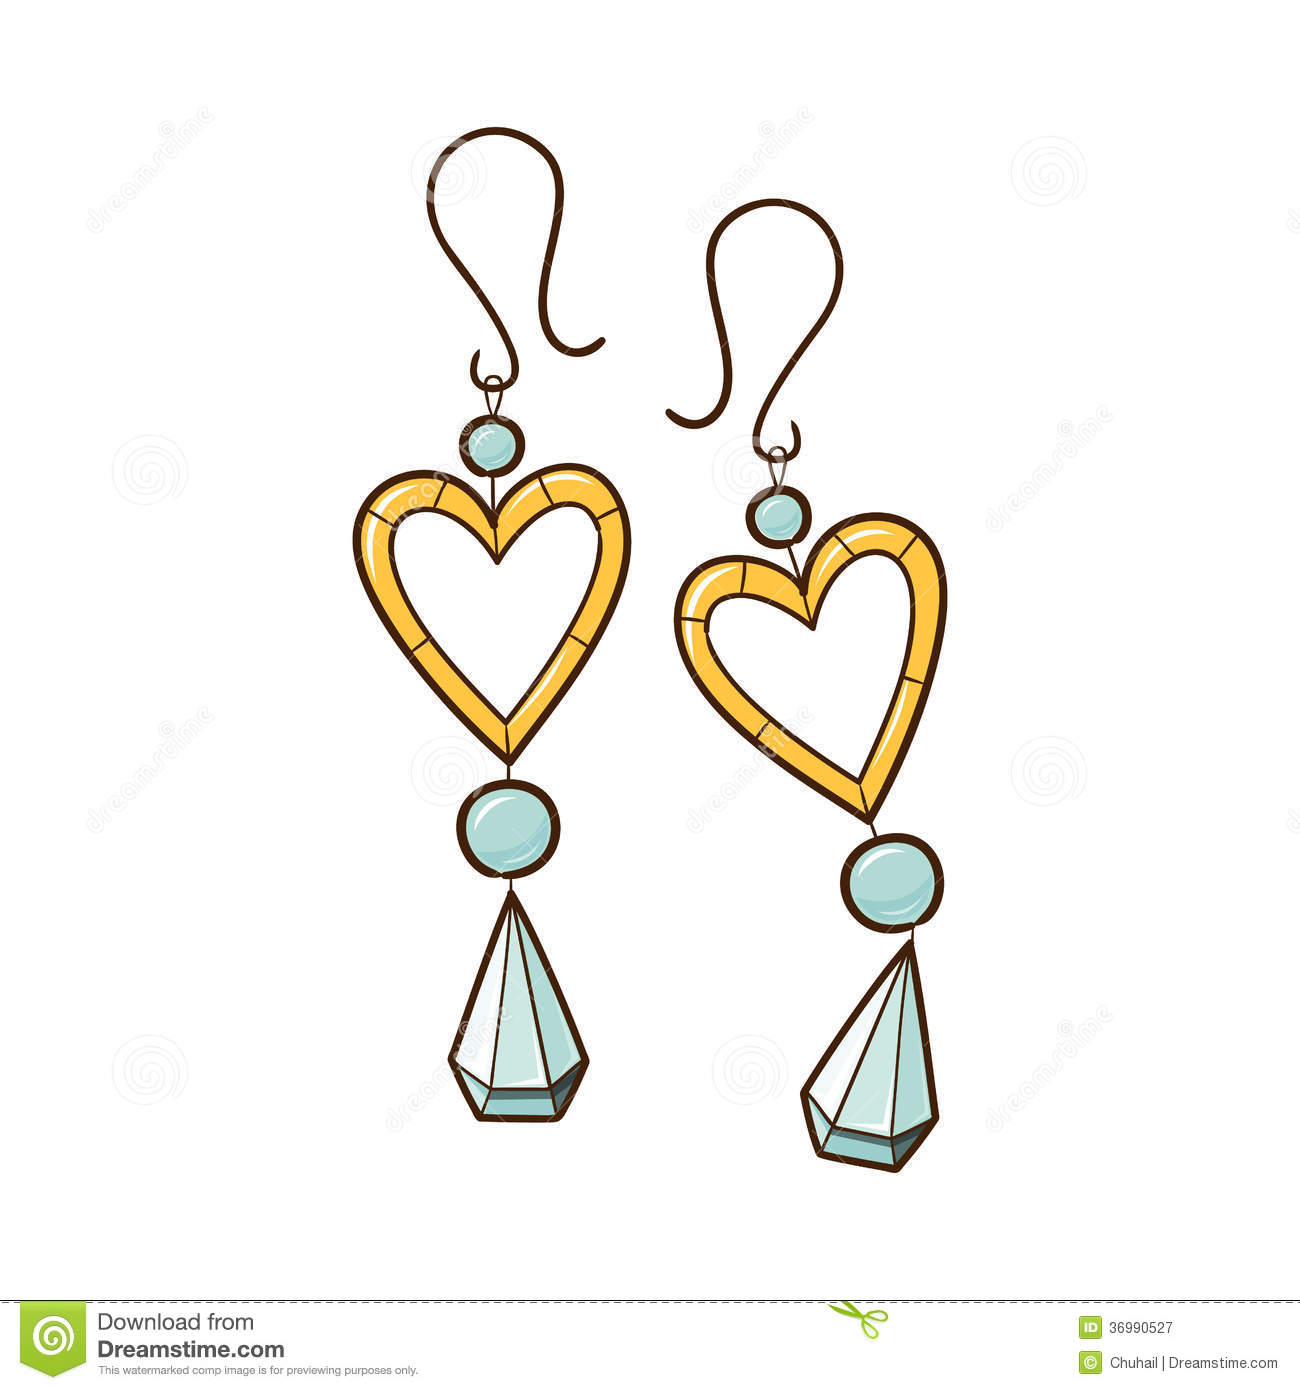 jewelry clip art free download - photo #22